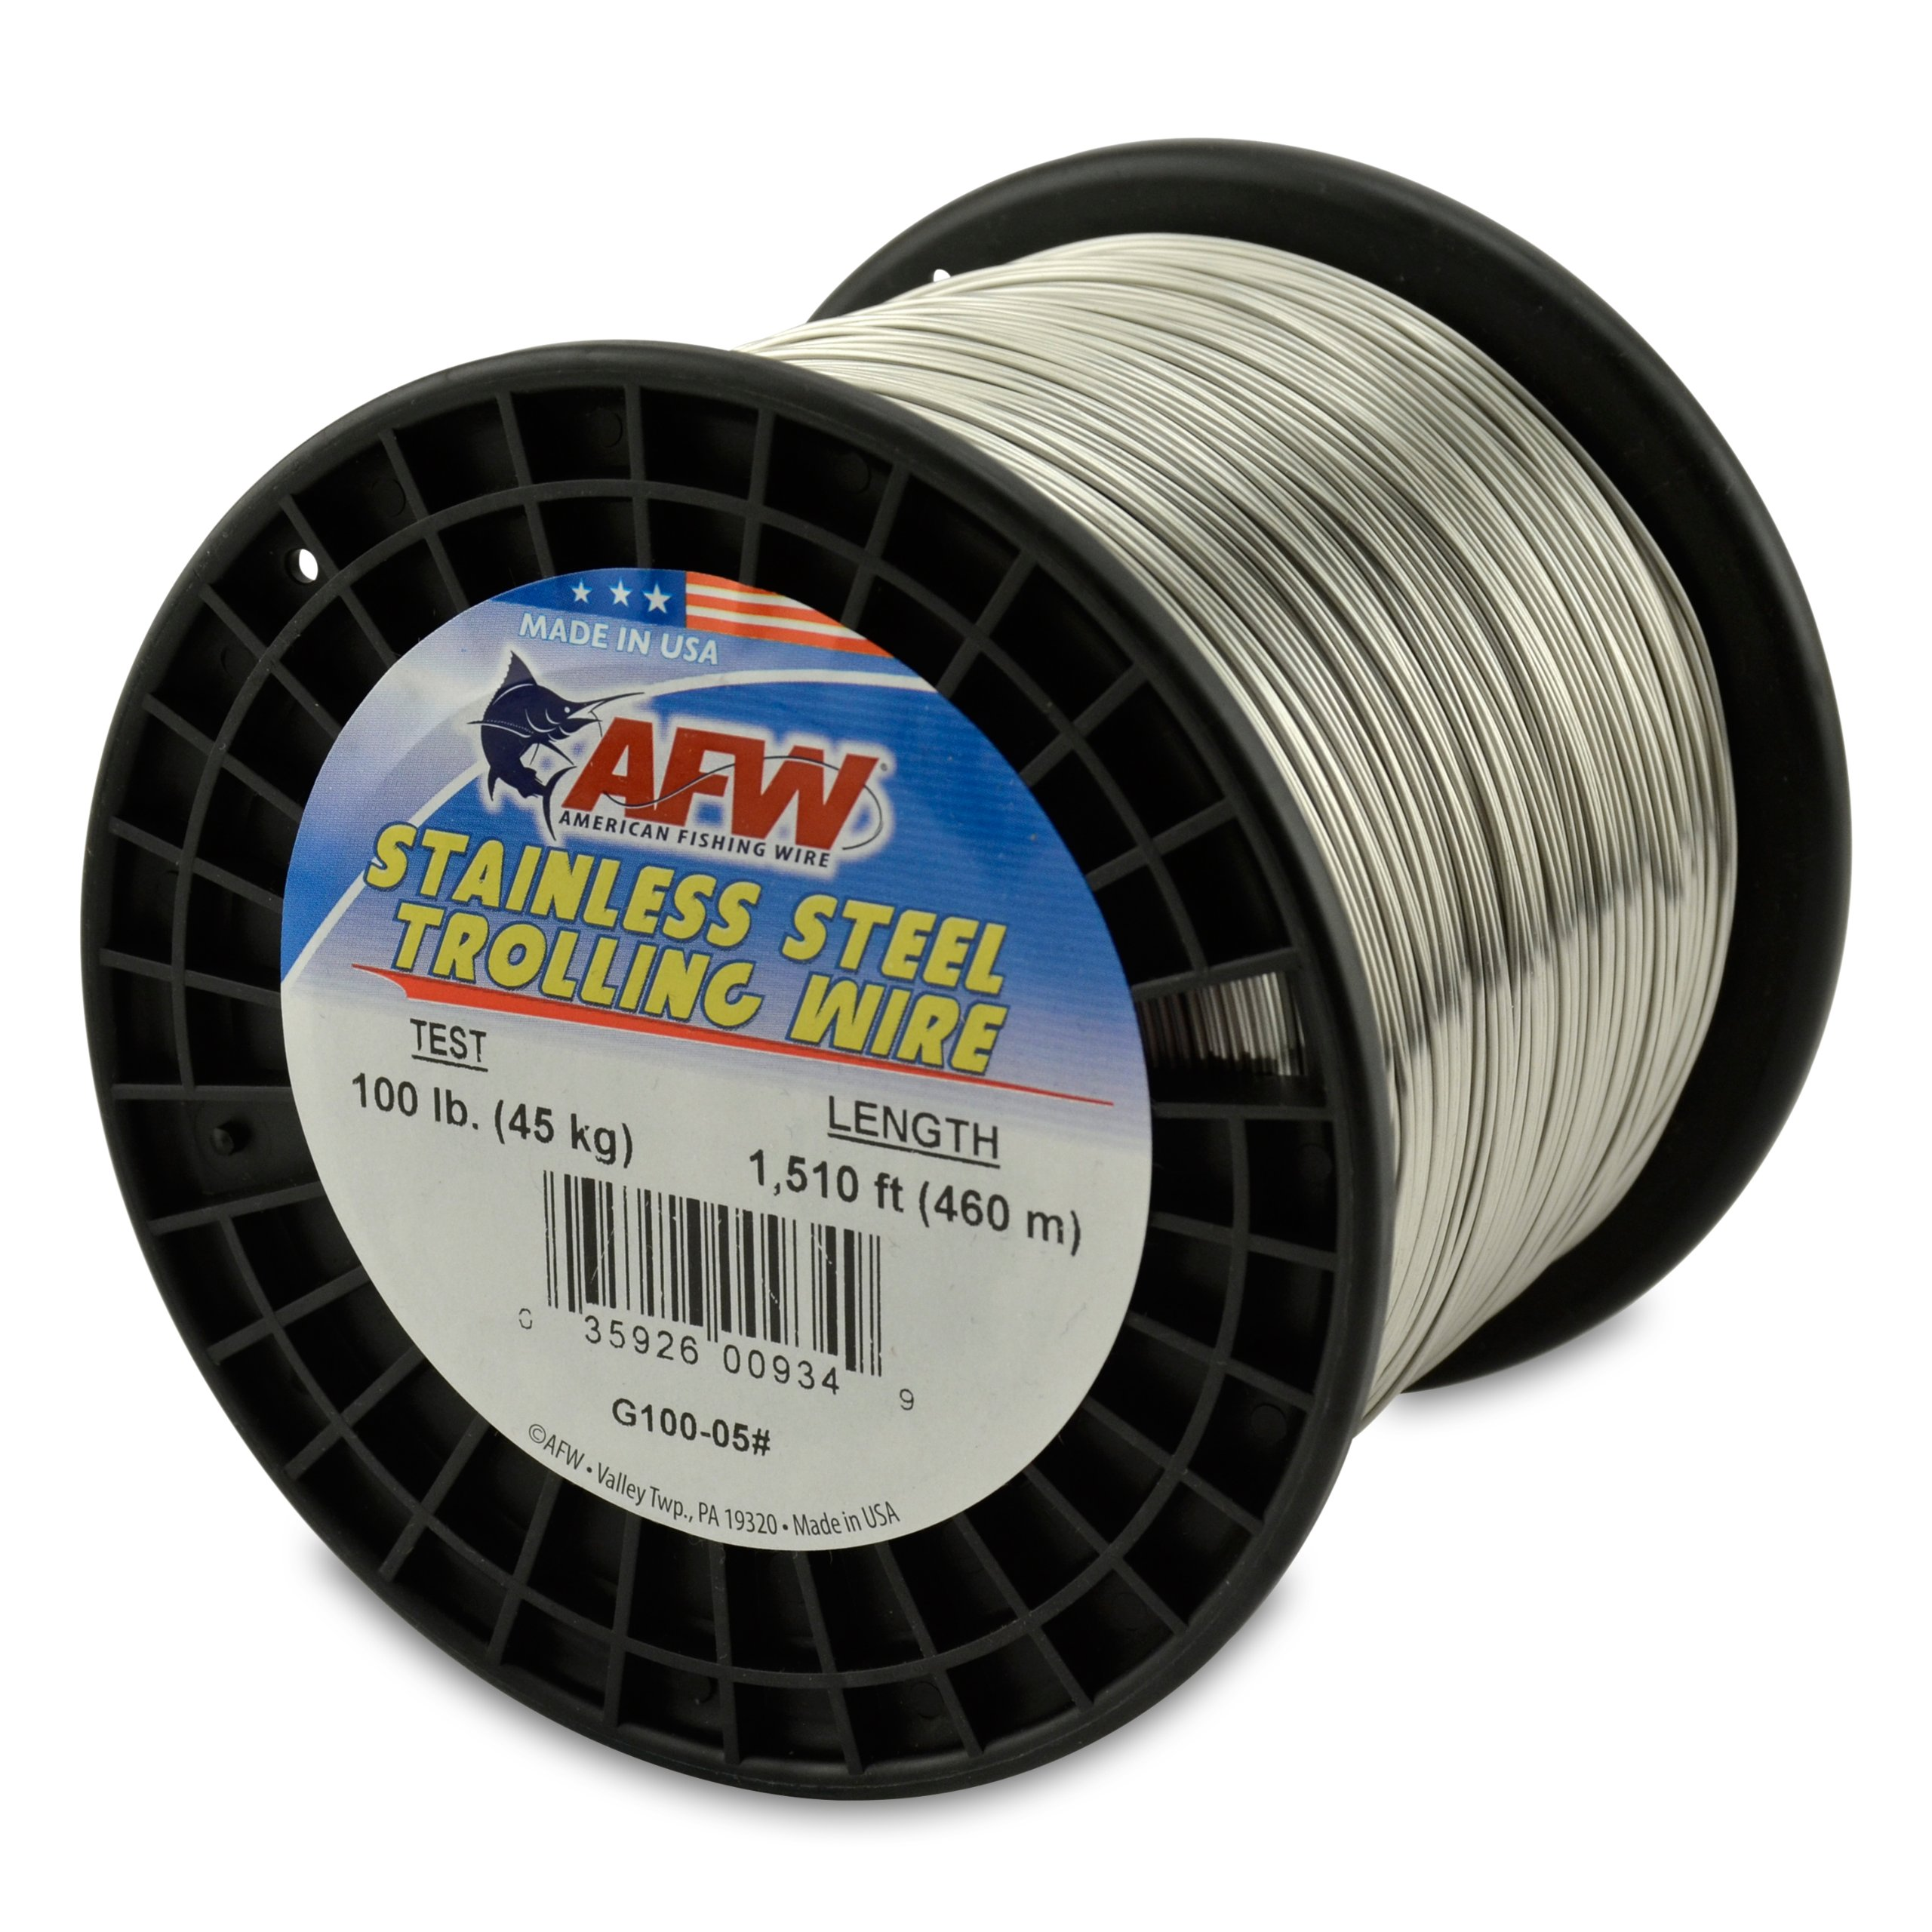 American Fishing Wire Stainless Steel Trolling Wire, 100-Pound Test/0.89mm Dia/460m by American Fishing Wire